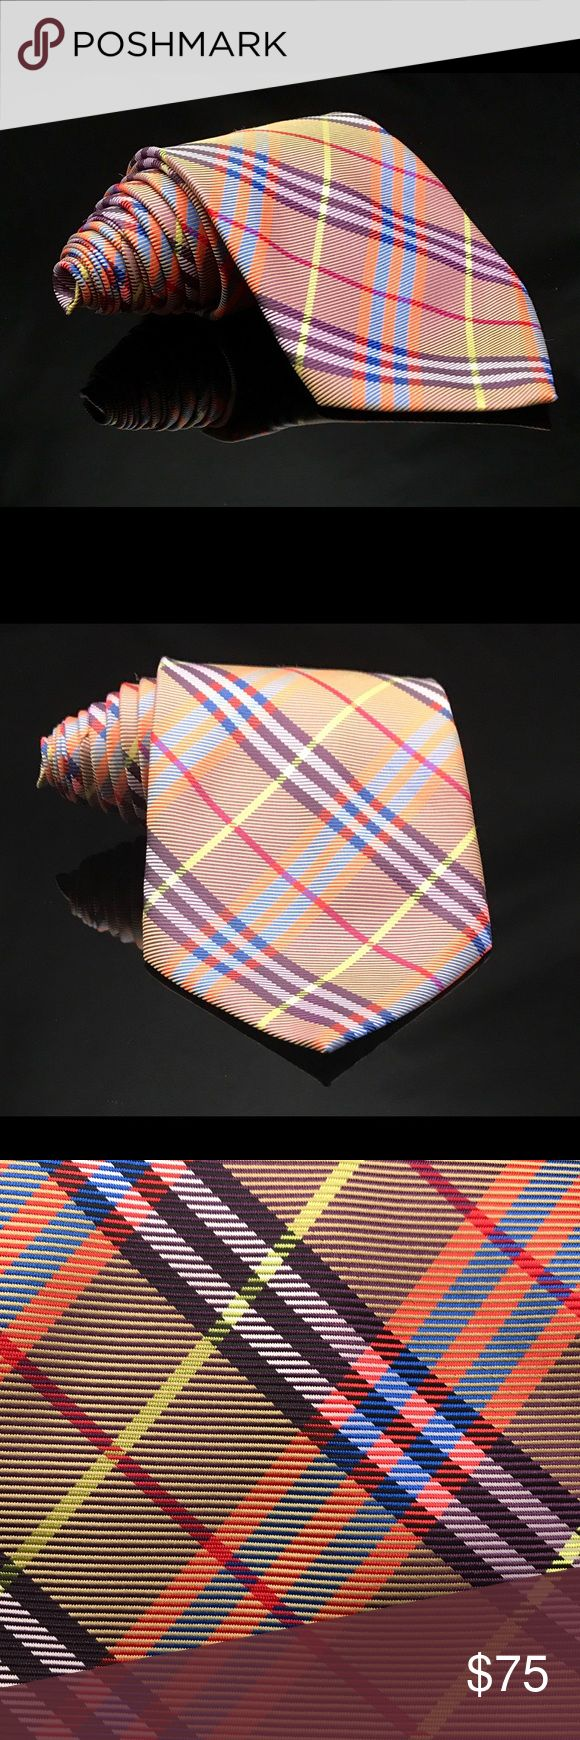 "SIGNATURE Burberry London Color Striped Silk Tie SIGNATURE Burberry London Color Striped Silk Tie 4"" Width STUNNING! Burberry Accessories Ties"